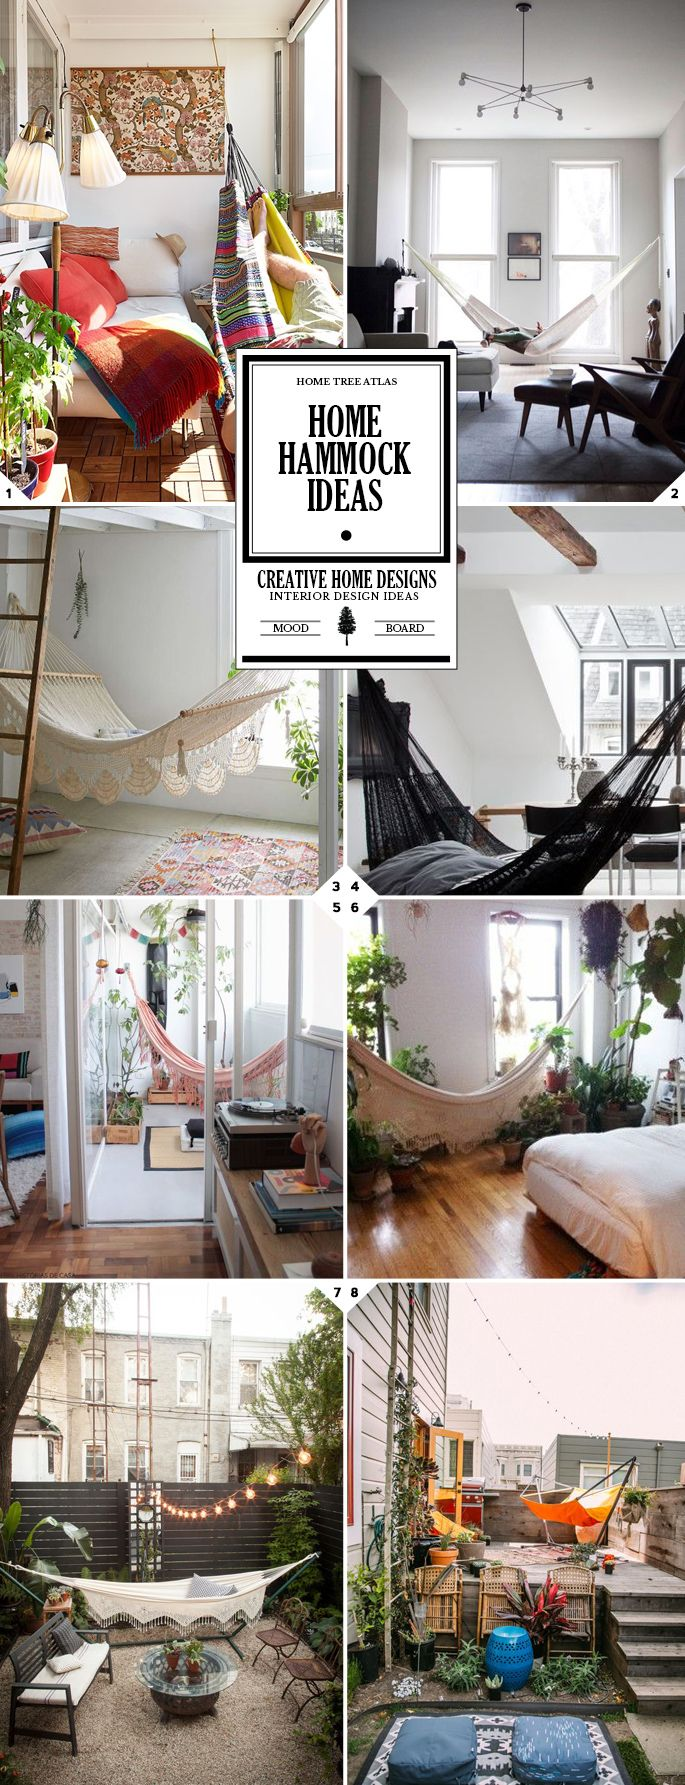 how to add a relaxing indoor hammock in your home hammock ideasindoor hammock